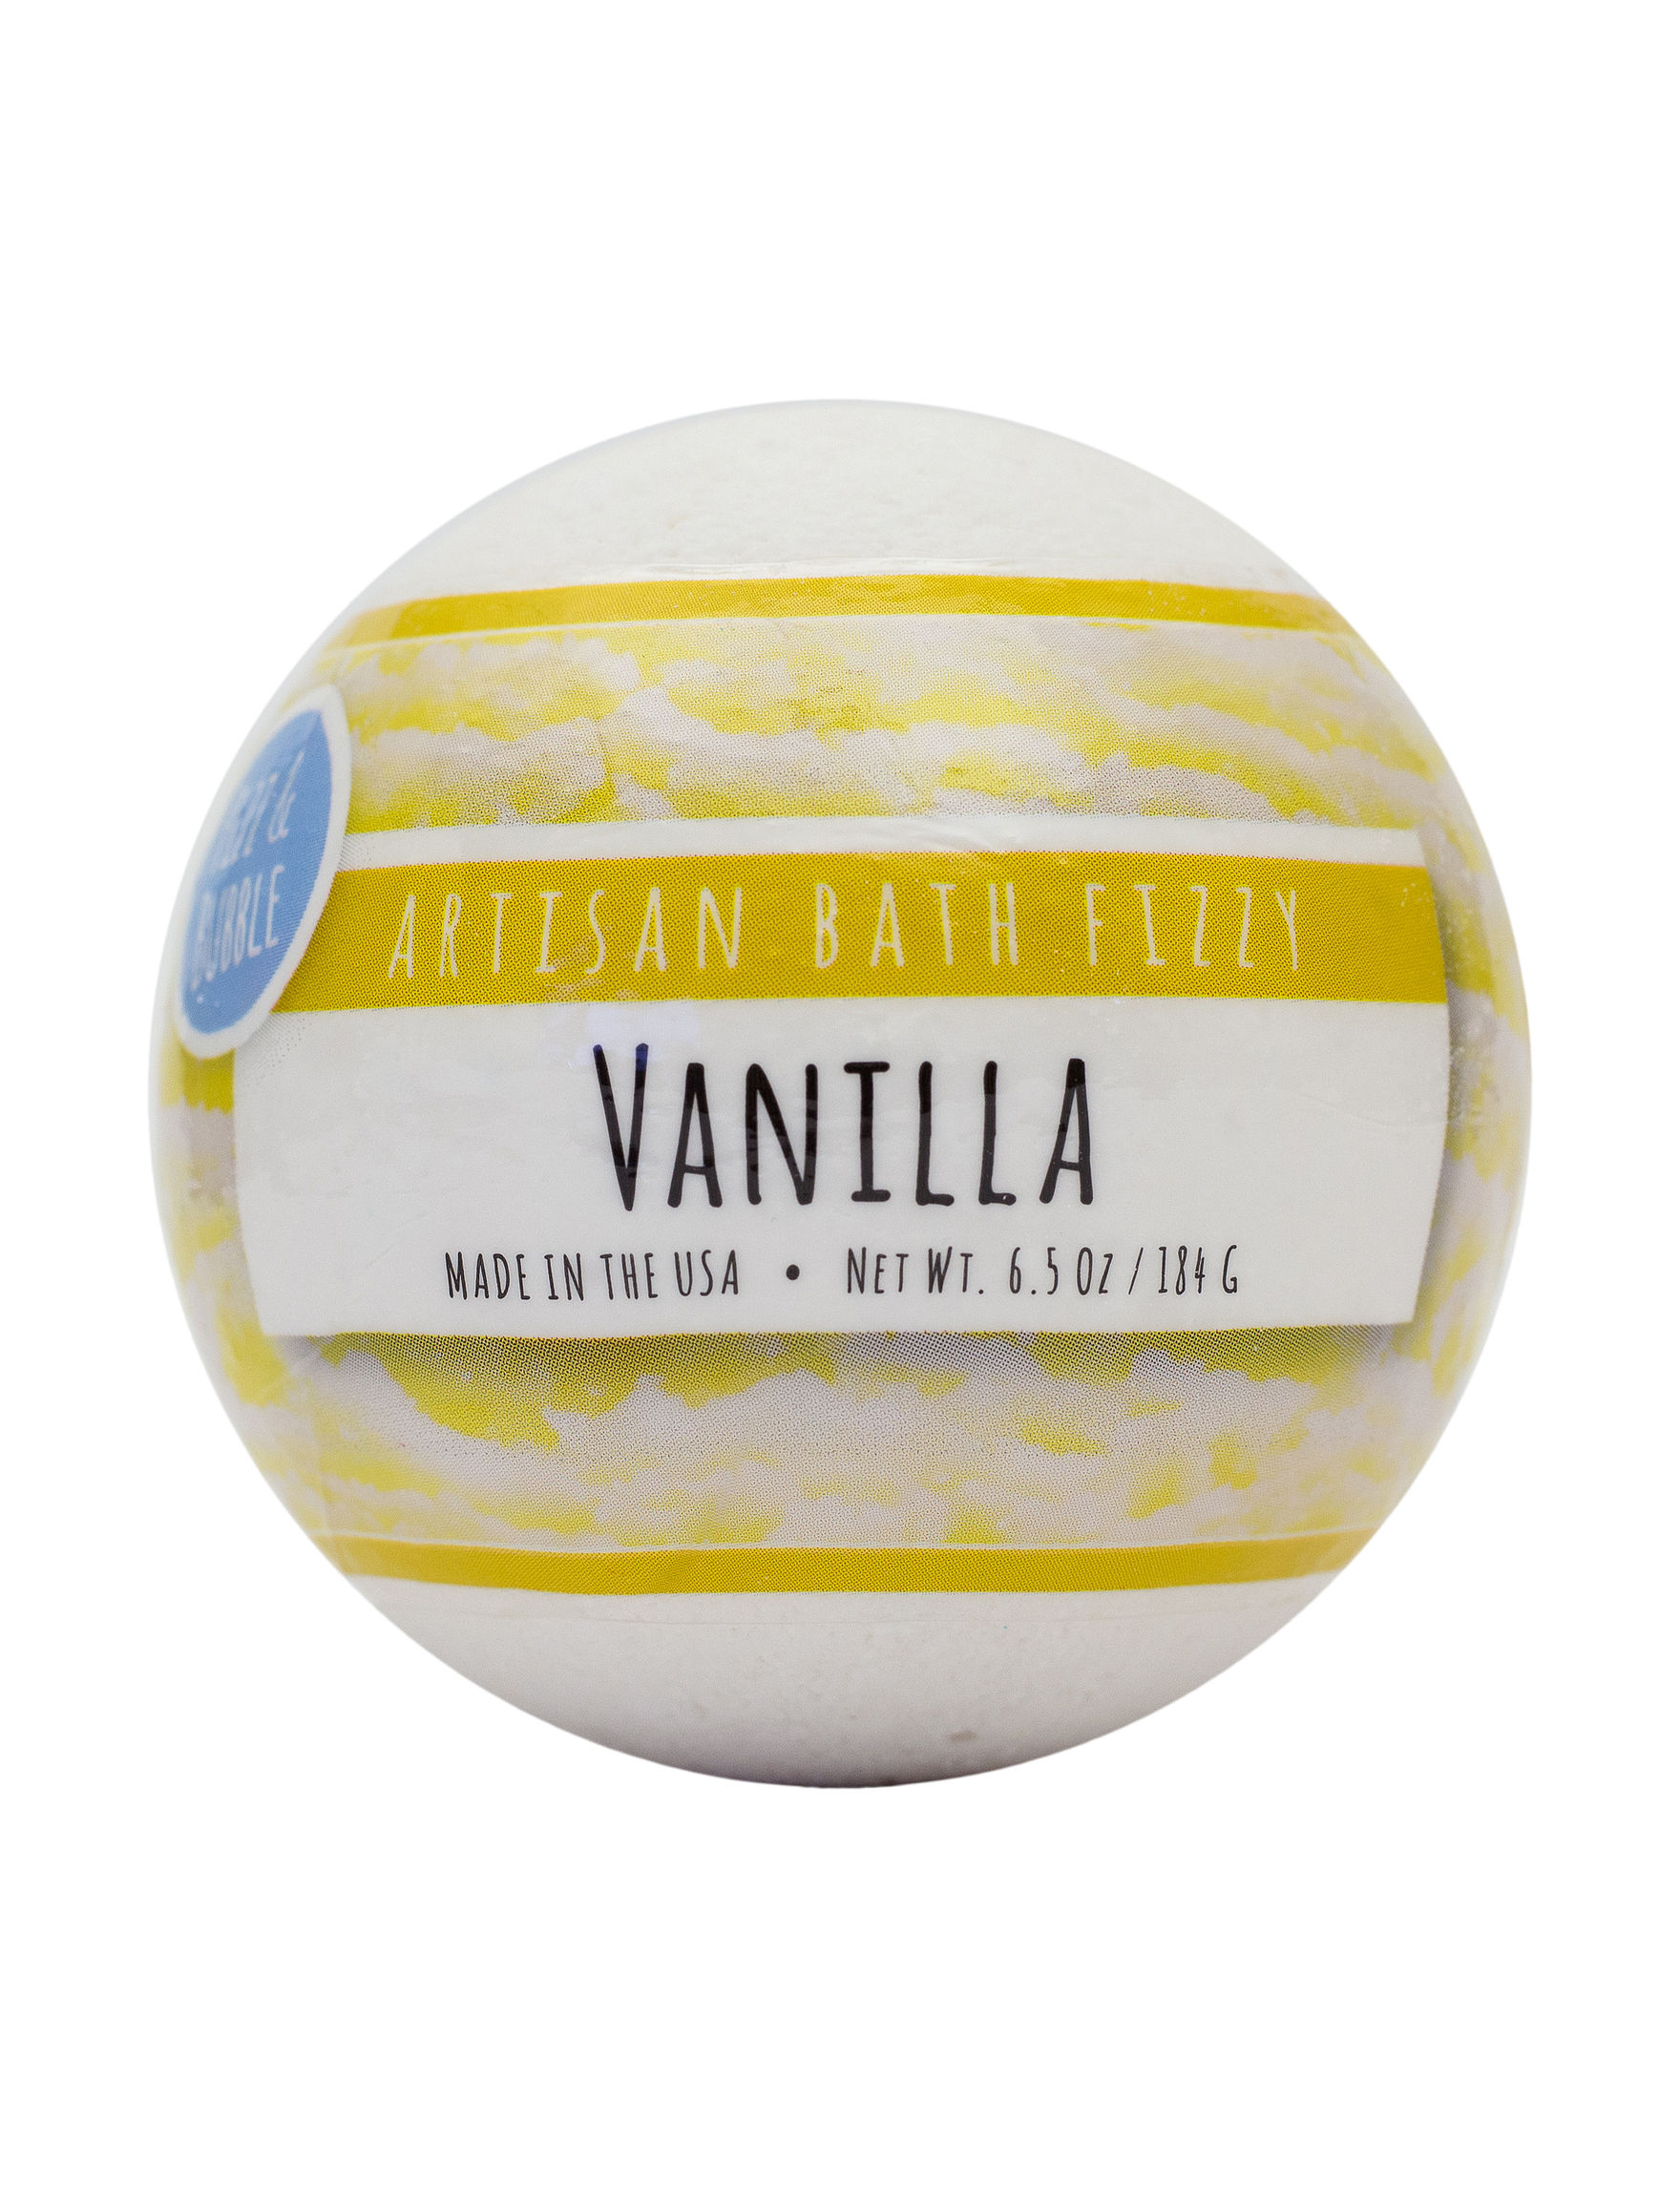 Fizz & Bubbles Warm Vanilla Bath Soaks & Oils